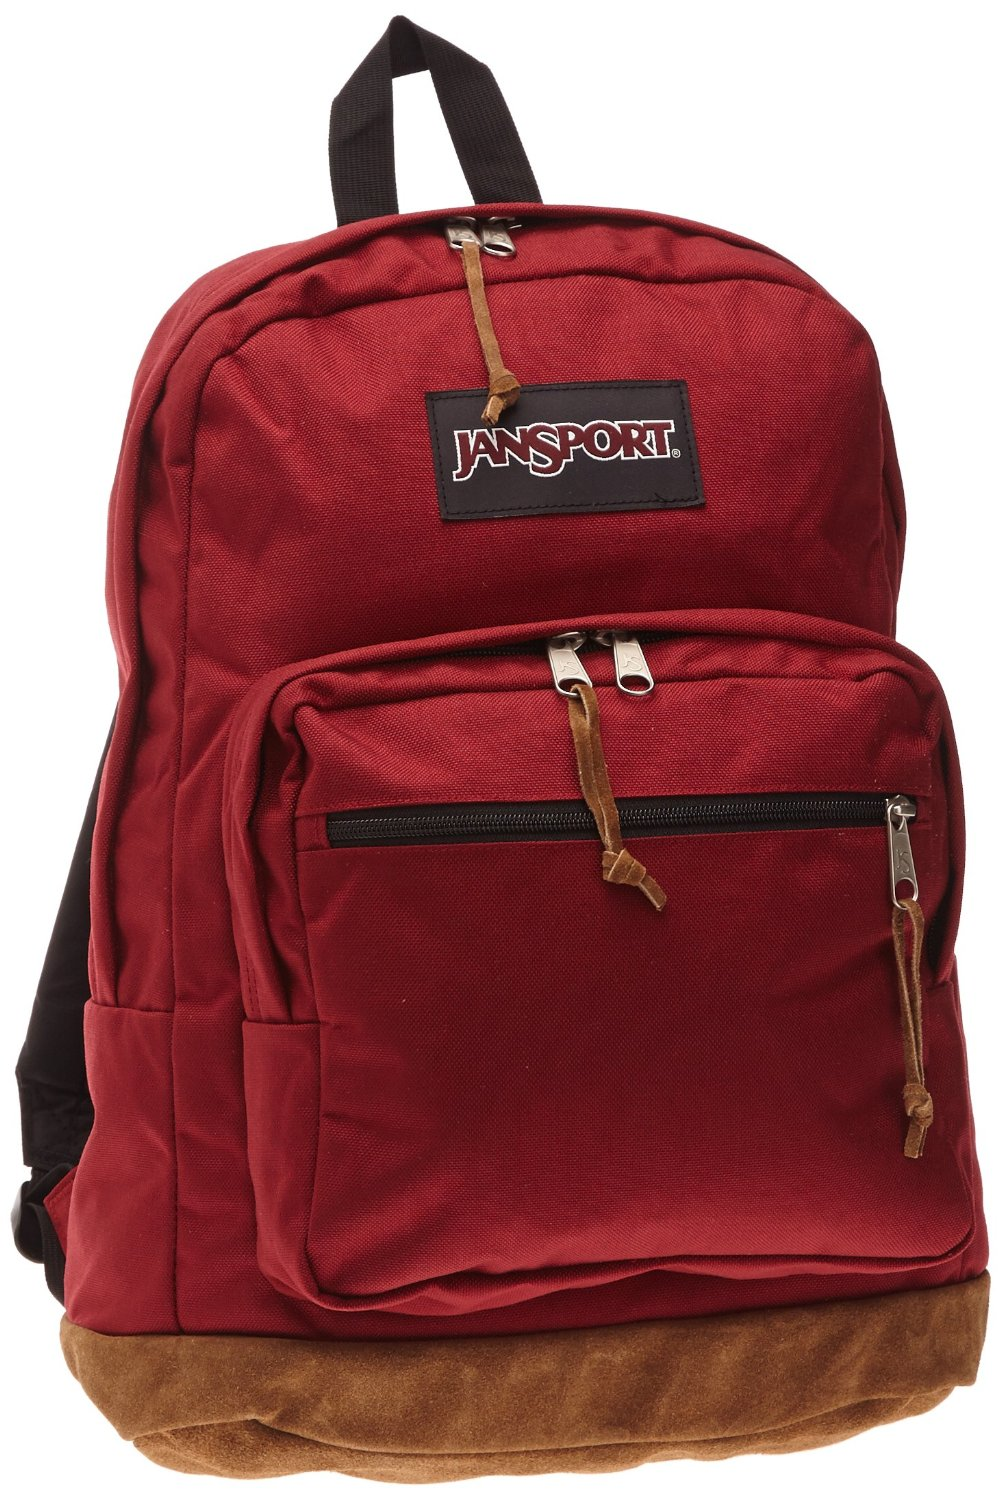 Maroon Jansport Backpack 93Kdz3Ep